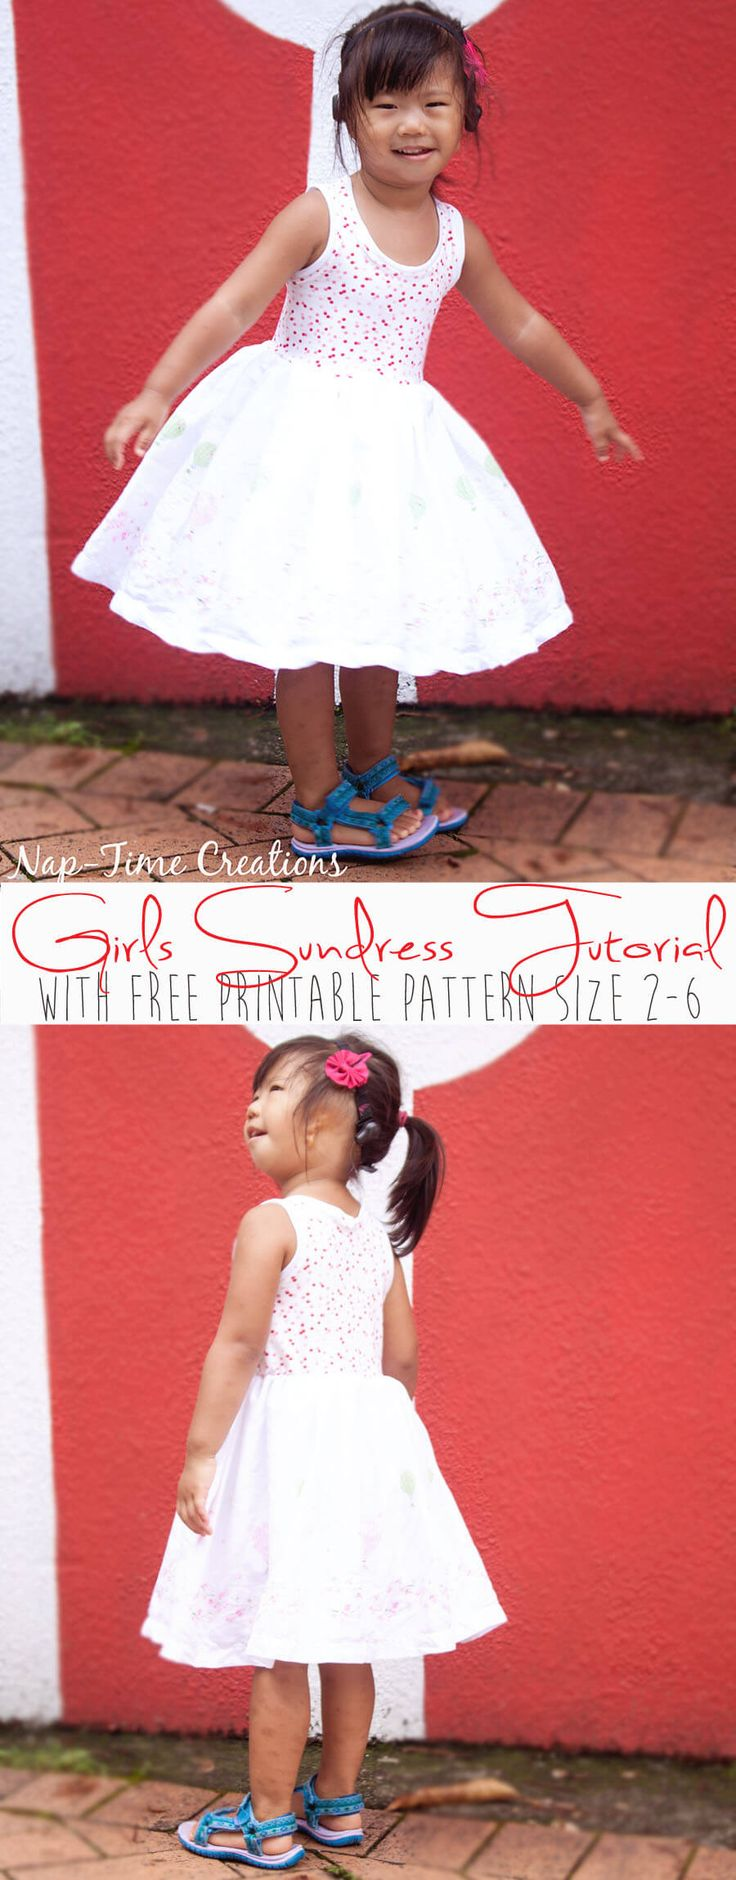 Girls-Sundress-Tutorial-with-Free-Printable-Tank-for-Melly-Sews-Sundress-Series by Nap-Time Creations